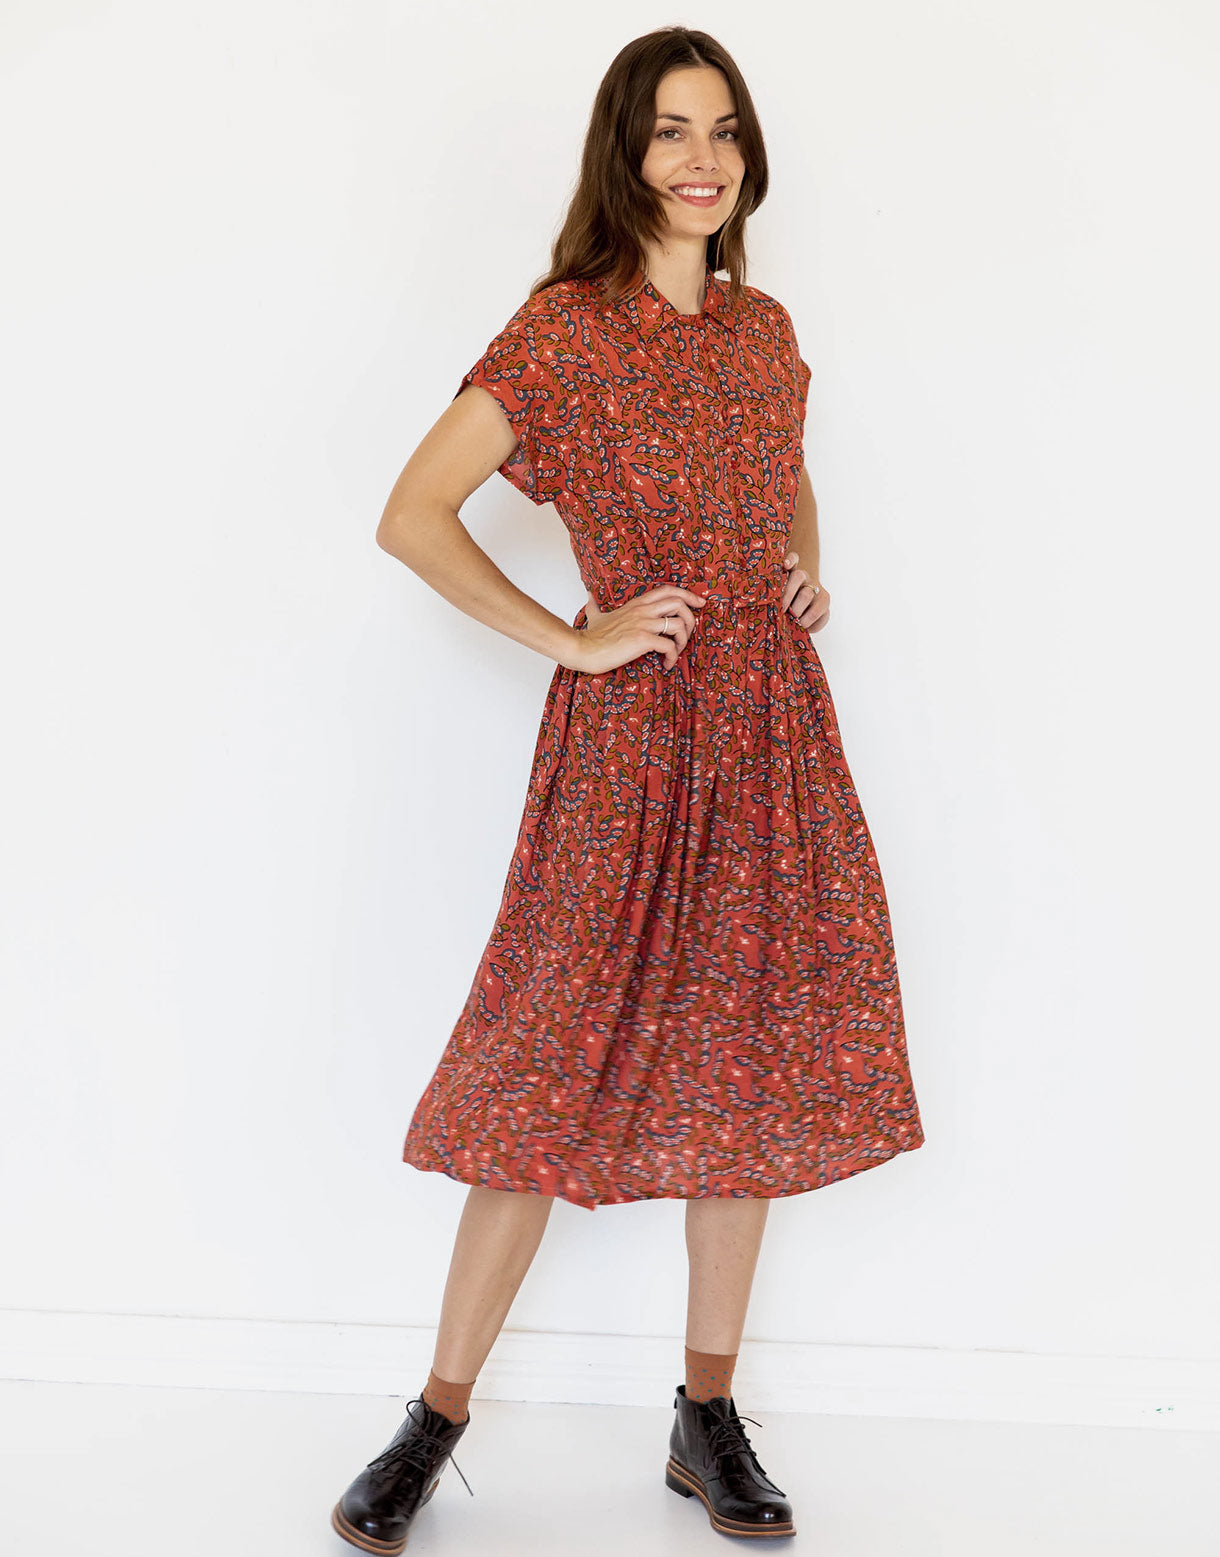 Beatrix Dress in Arbor *sustainable viscose